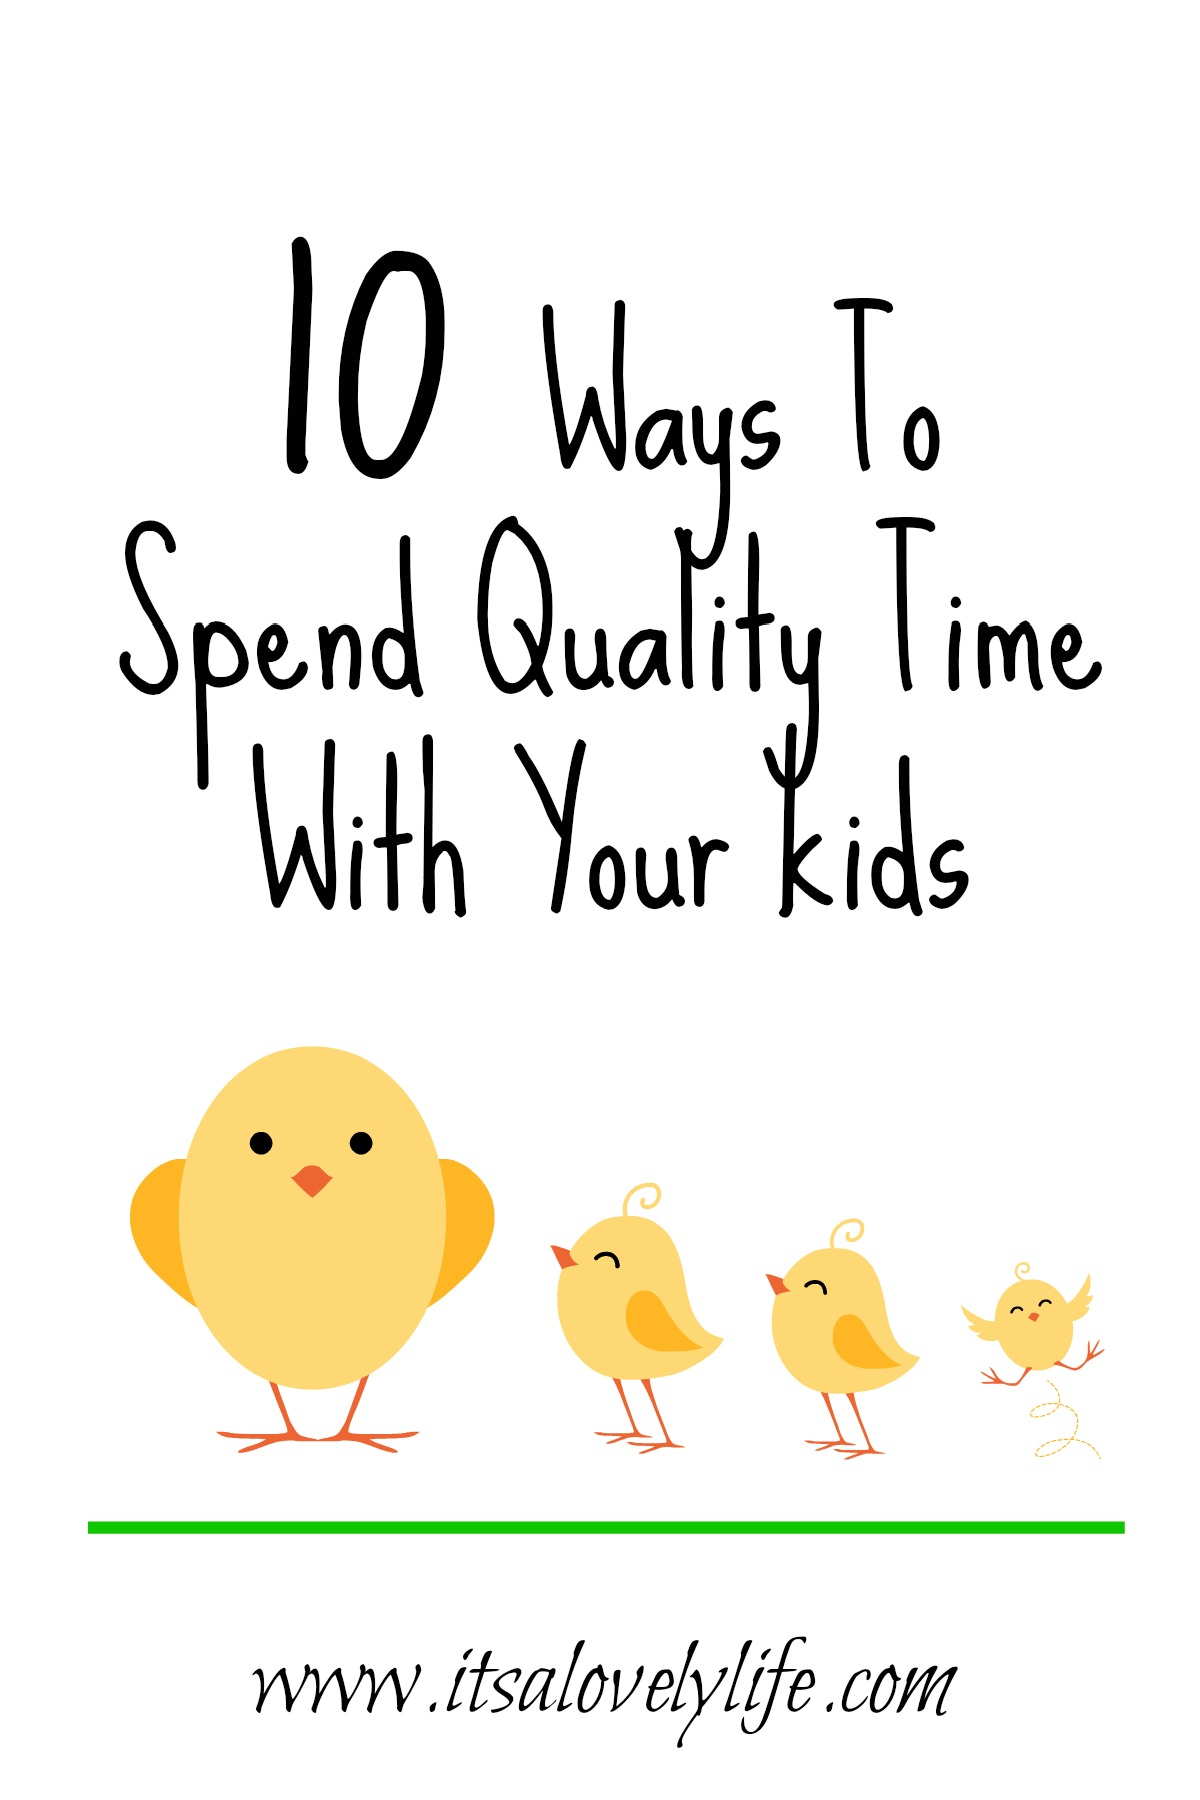 Ways to spend quality time with your kids